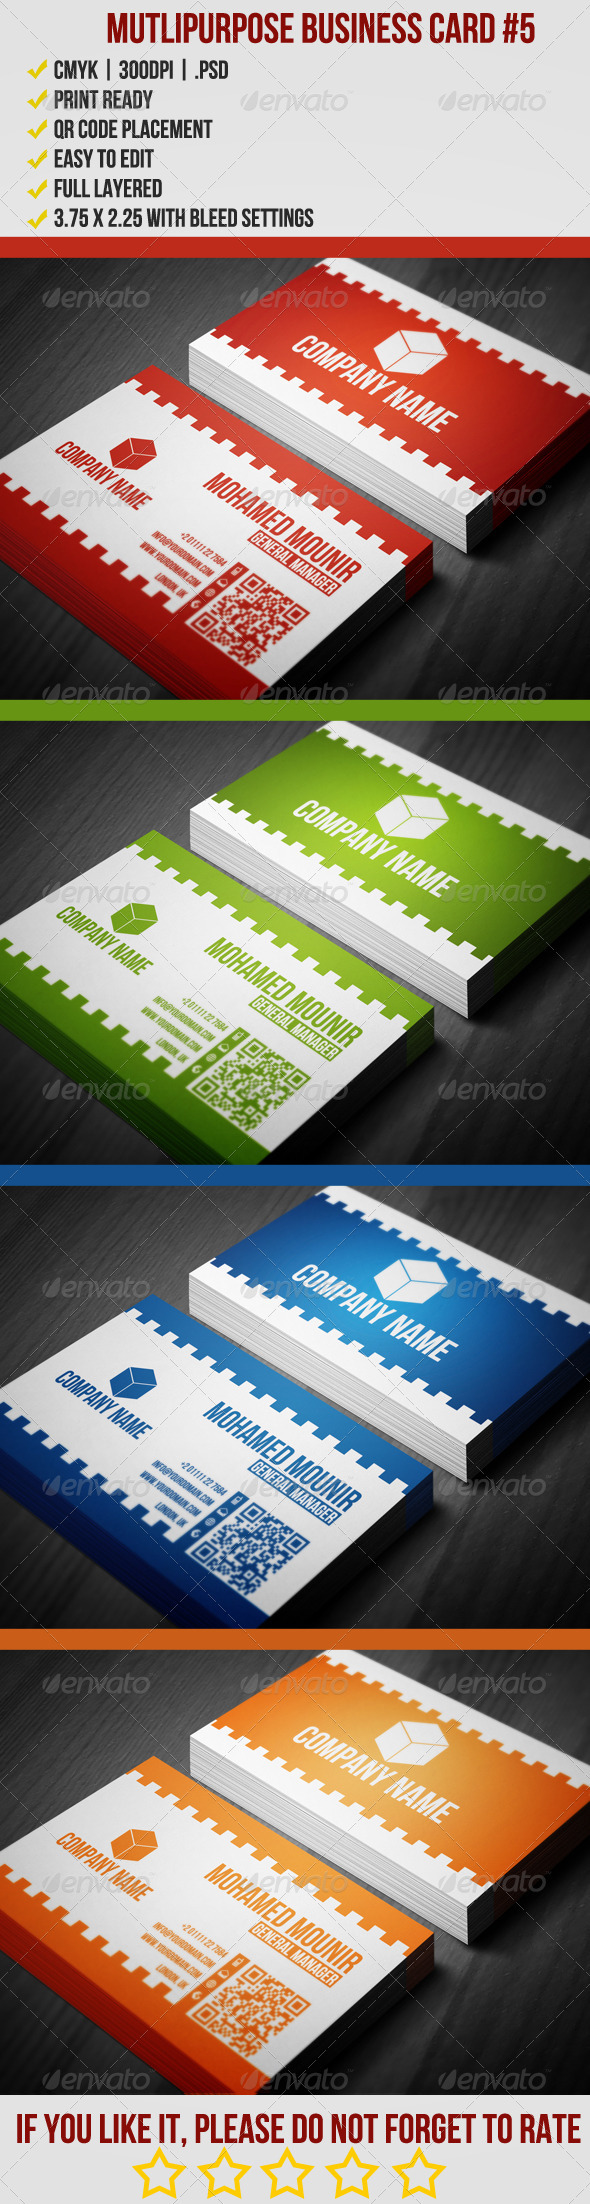 Multipurpose Business Card 5 - Corporate Business Cards